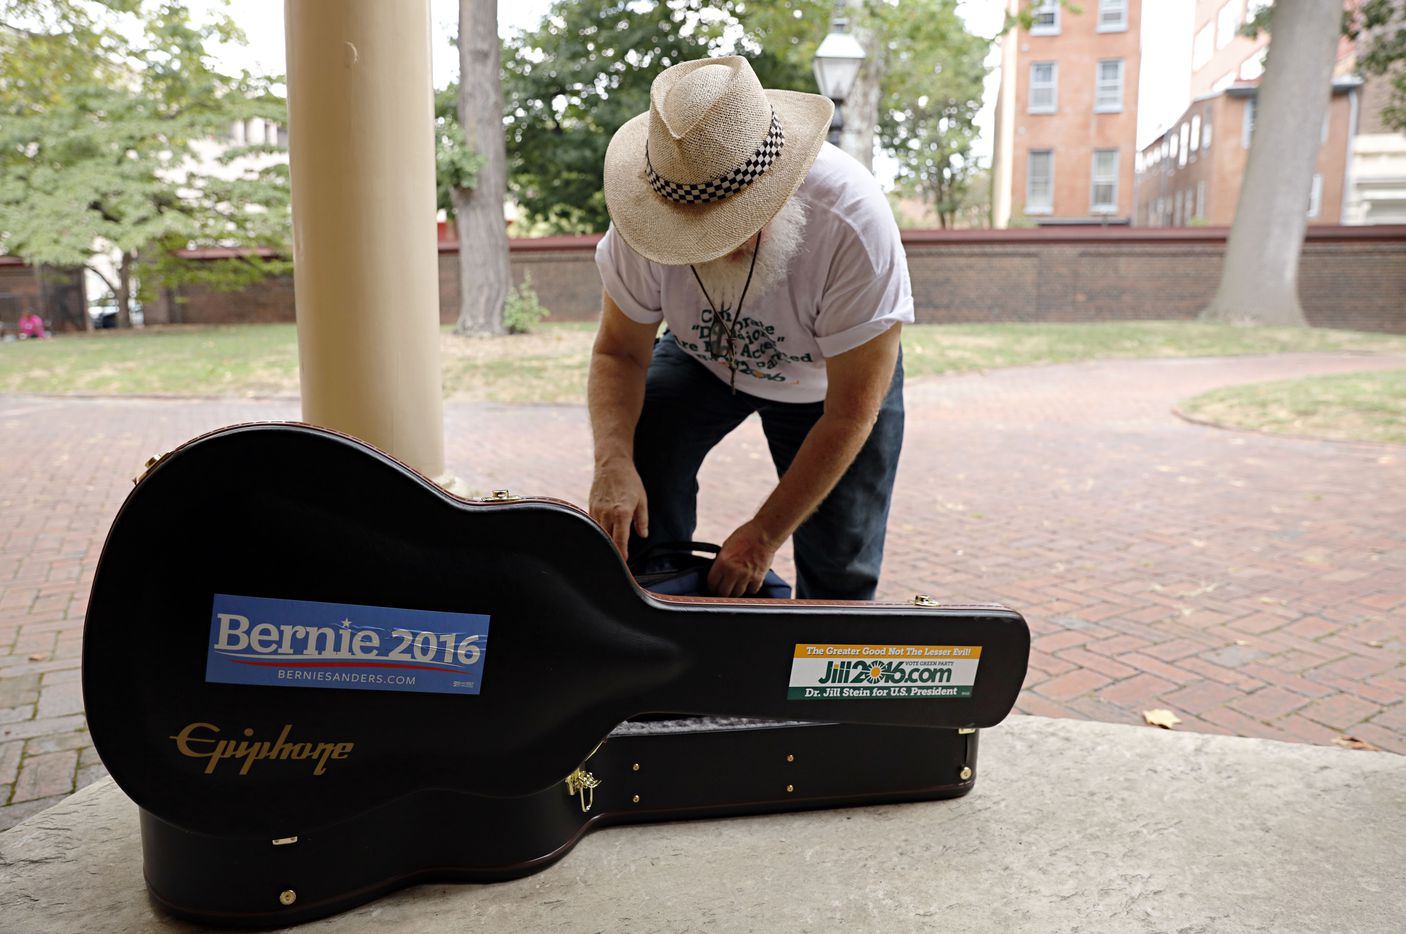 Rodney Hytonen of Pennsboro, West Virginia, checks on his guitar during the People's Convention.